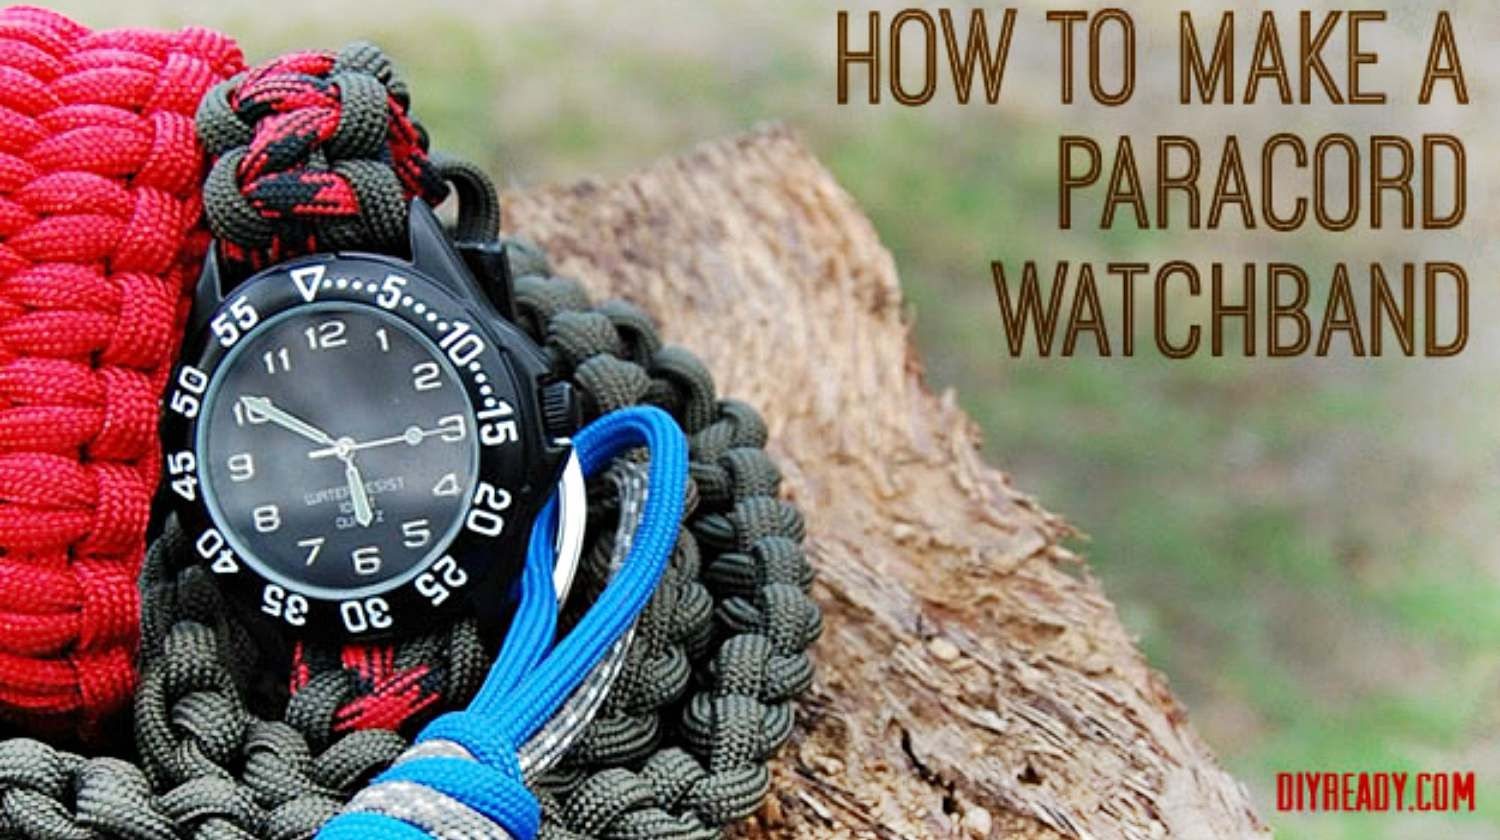 How to make a paracord watchband paracord projects